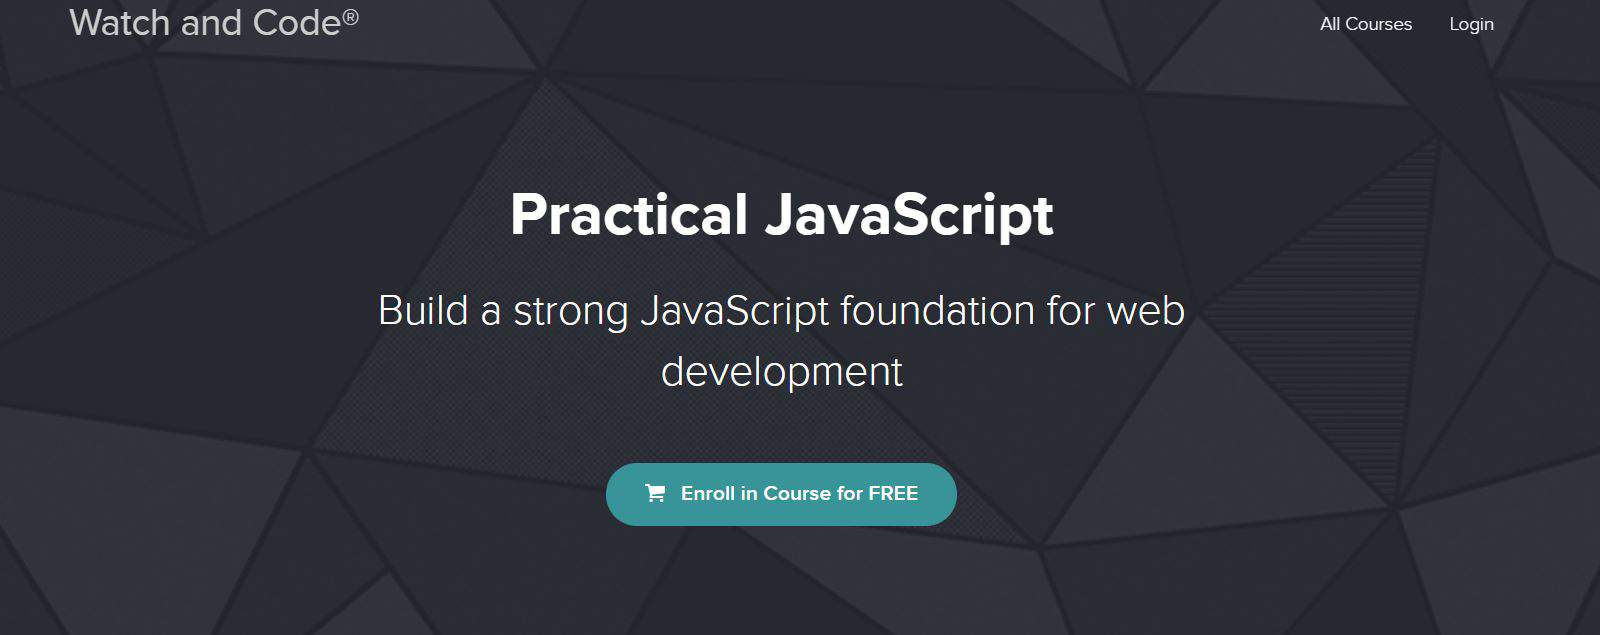 Learn JavaScript from Watch and Code